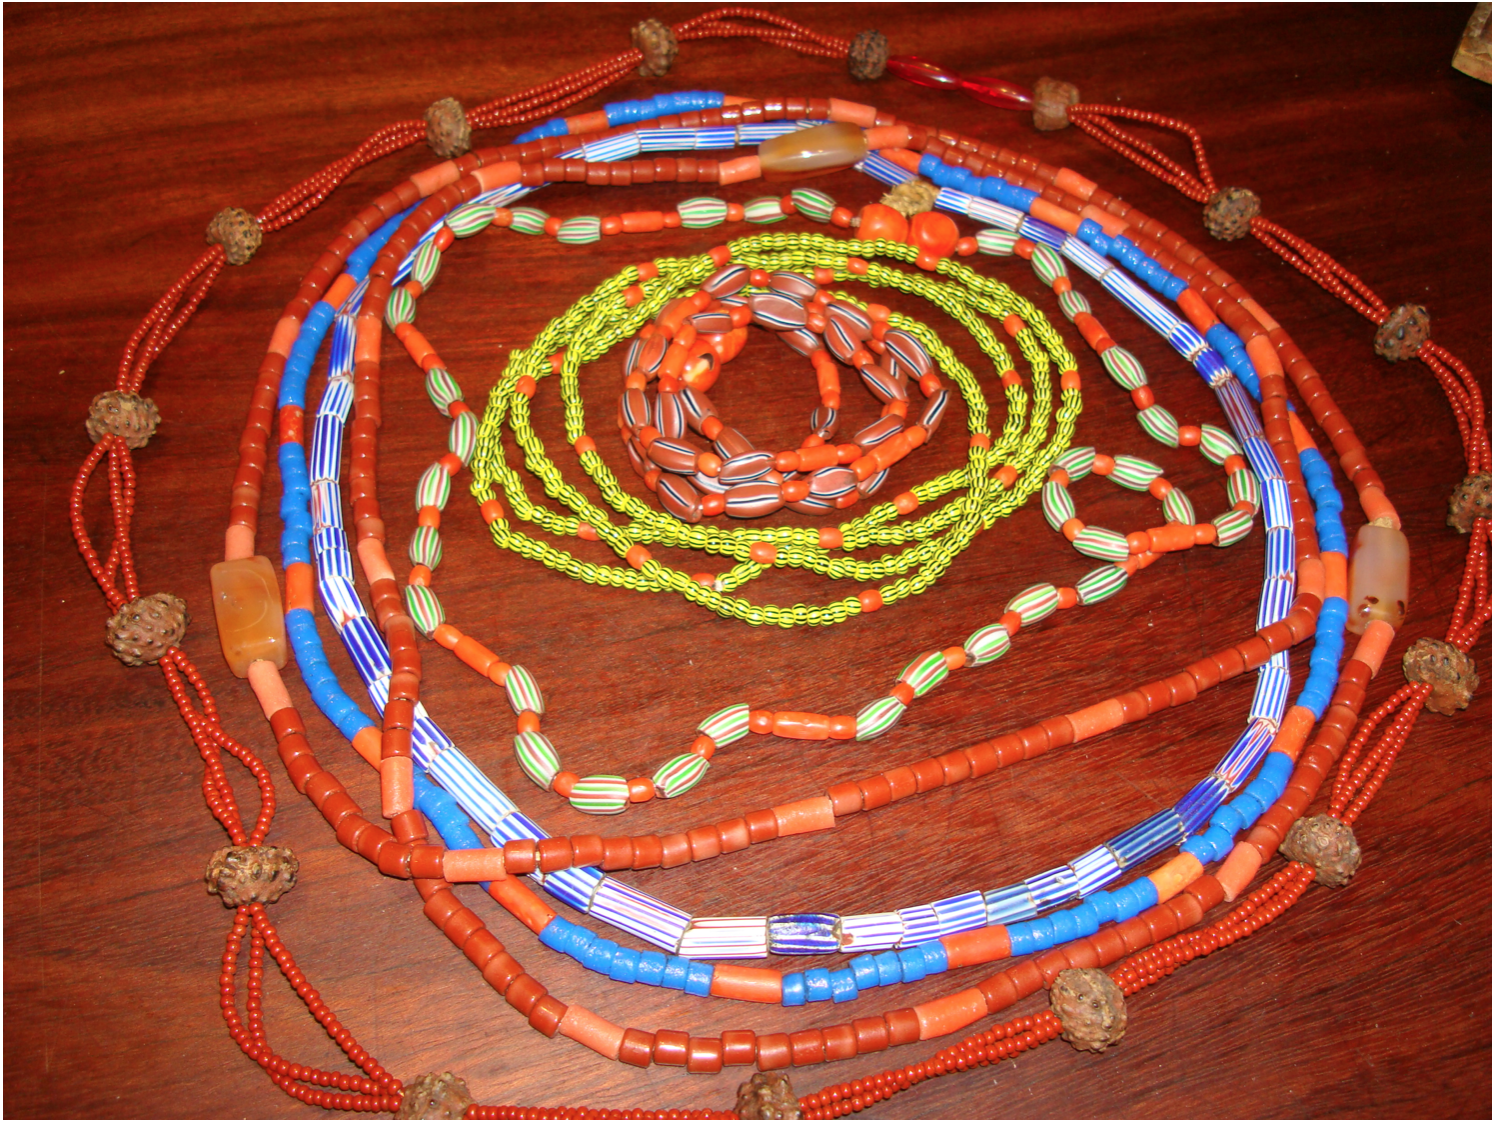 Fio de conta beads on string